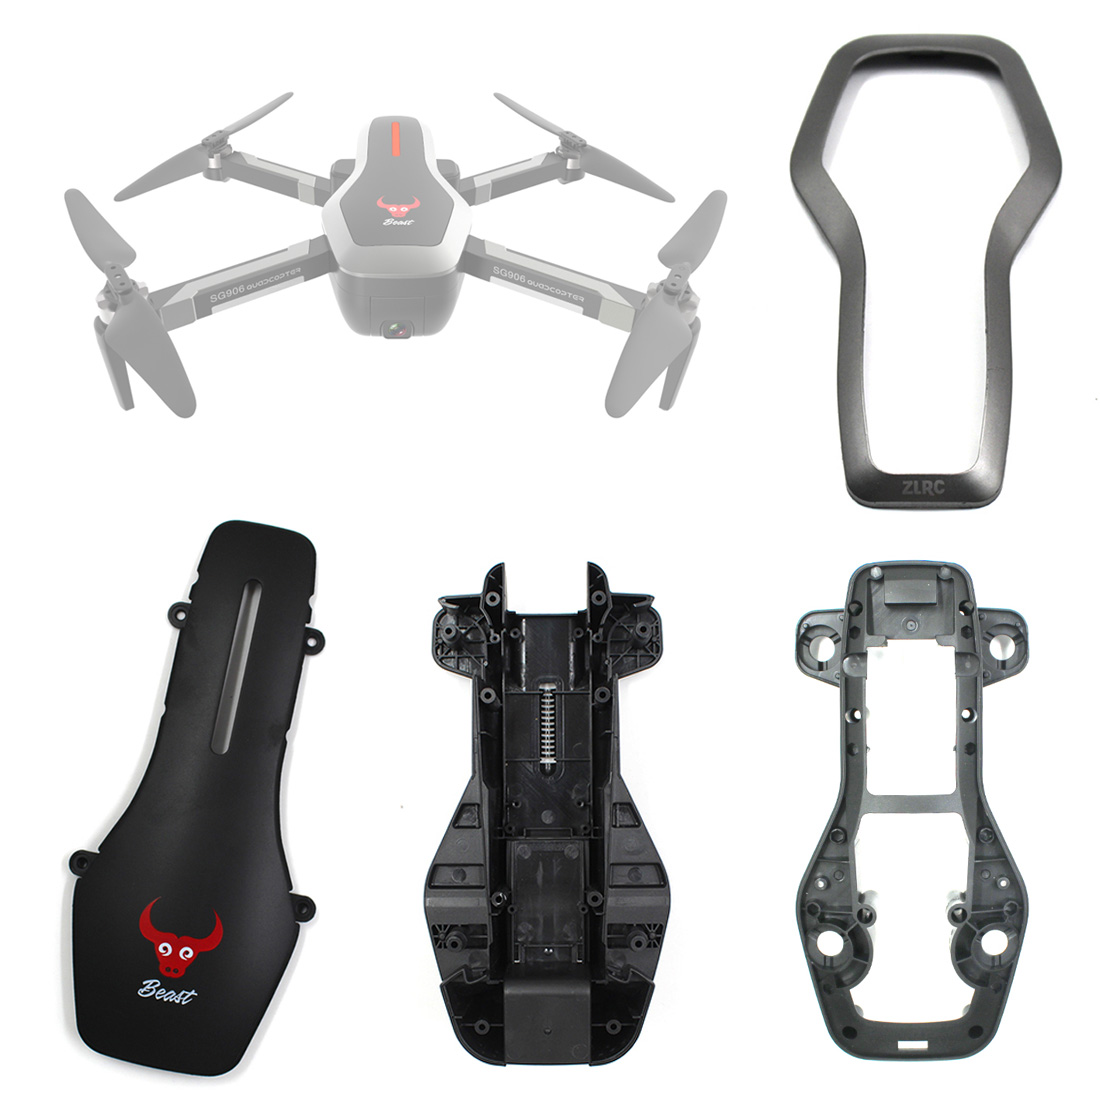 HOBBYINRC Outer Cover Kit With Top Shell Upper Cover Buttom Cover Frame For SG906 GPS Brushless Folding Drone